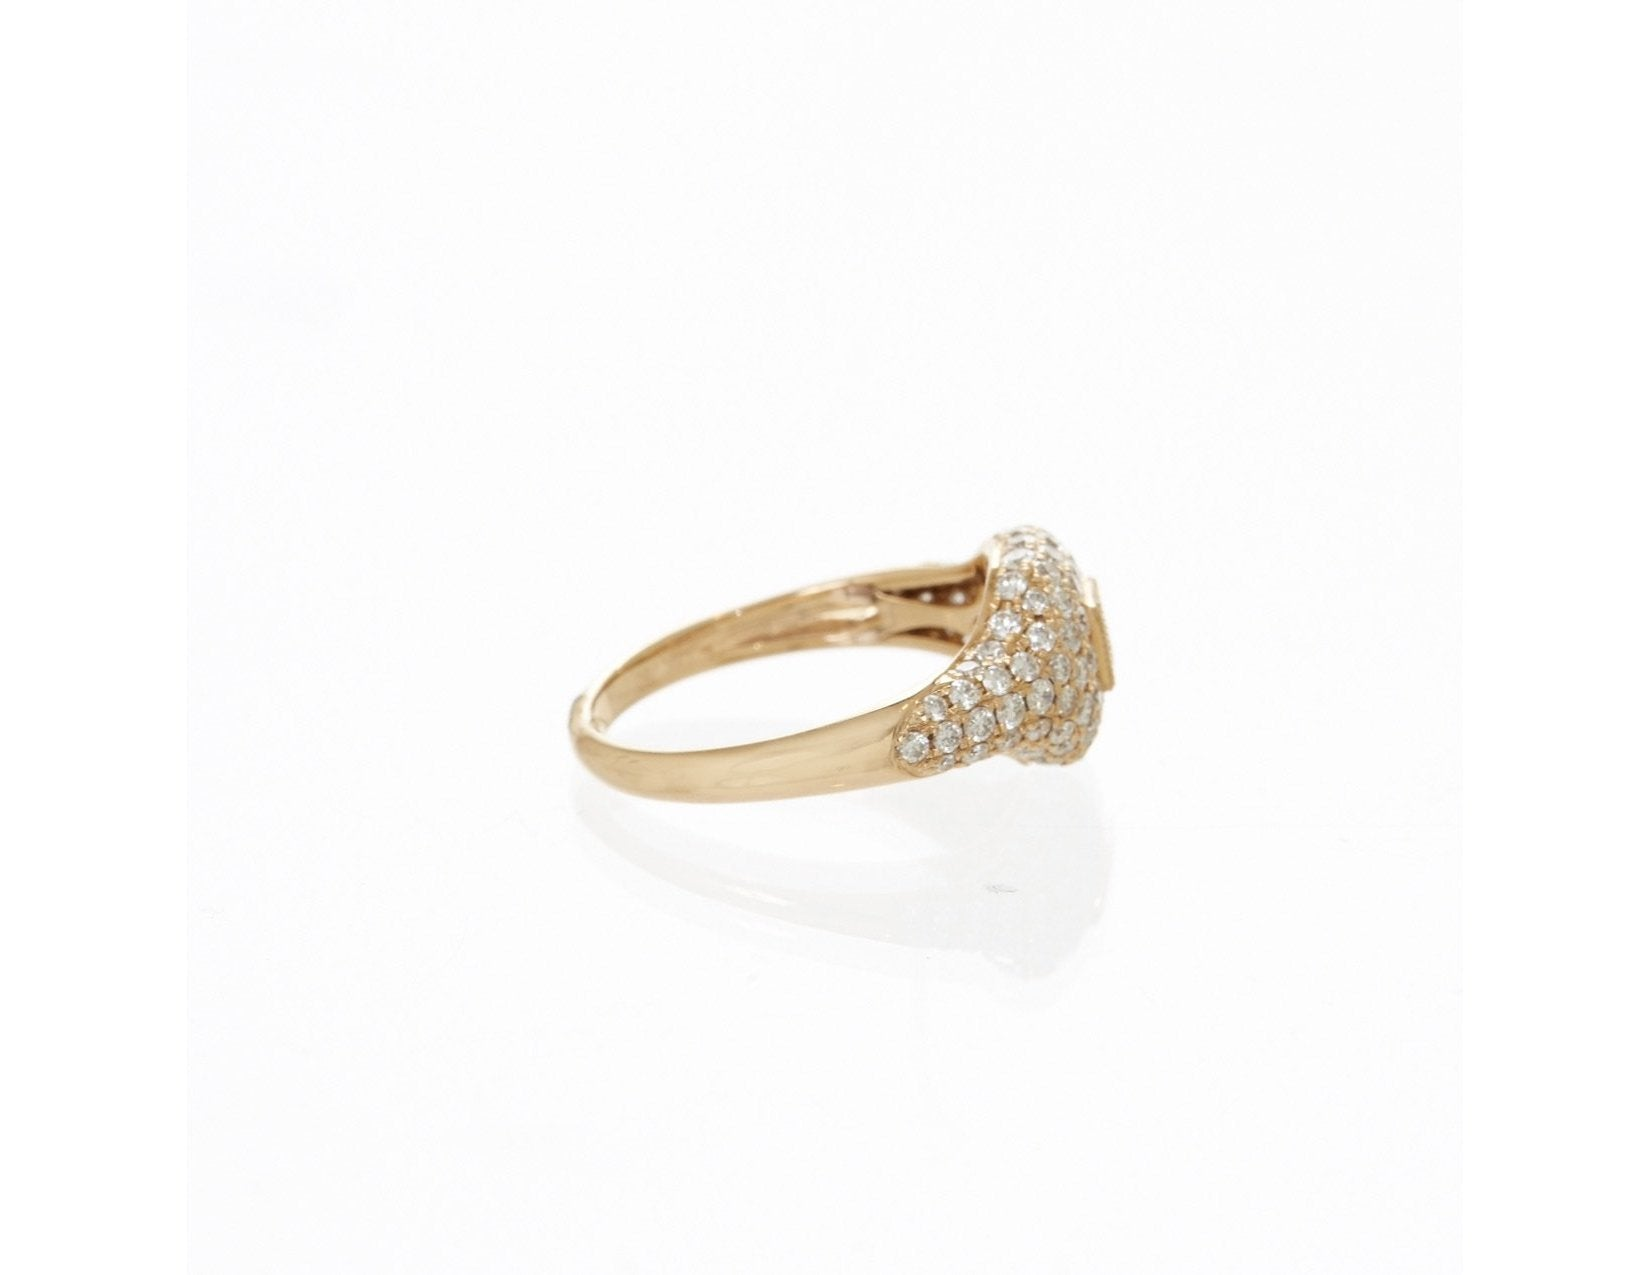 Pave Baguette Diamond Ring